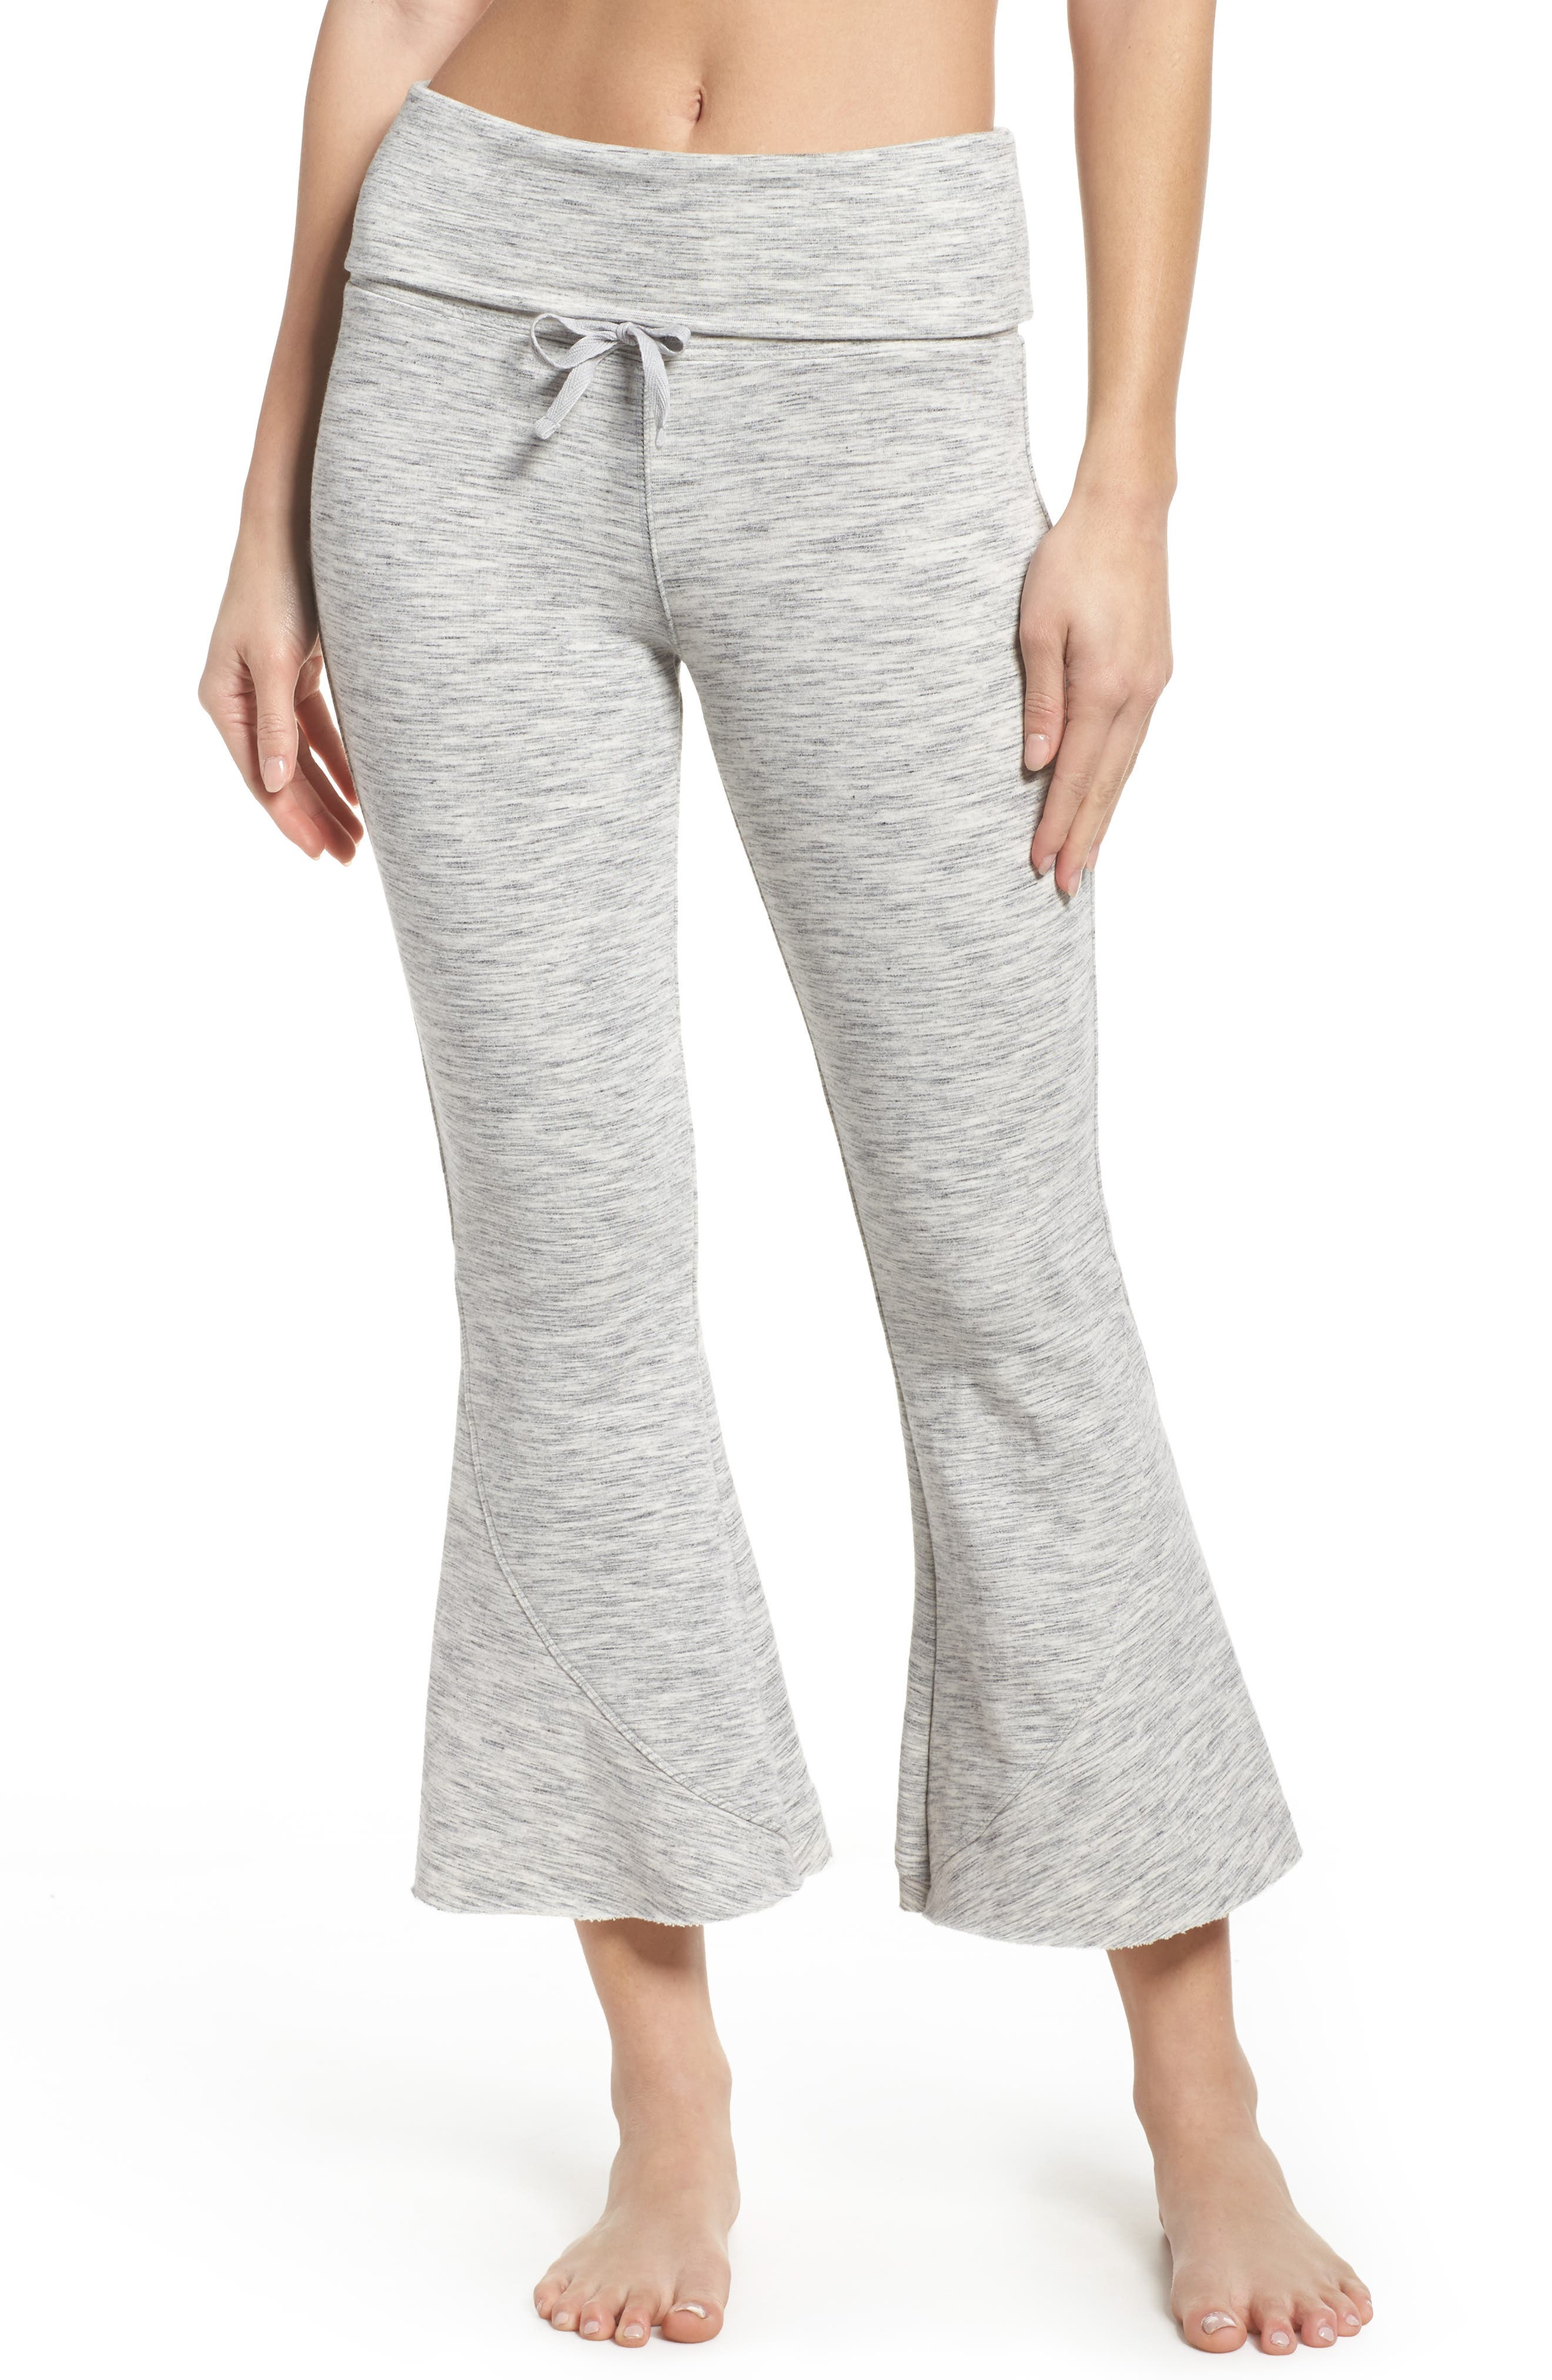 FP Movement Nico Crop Flare Sweatpants,                             Main thumbnail 1, color,                             025